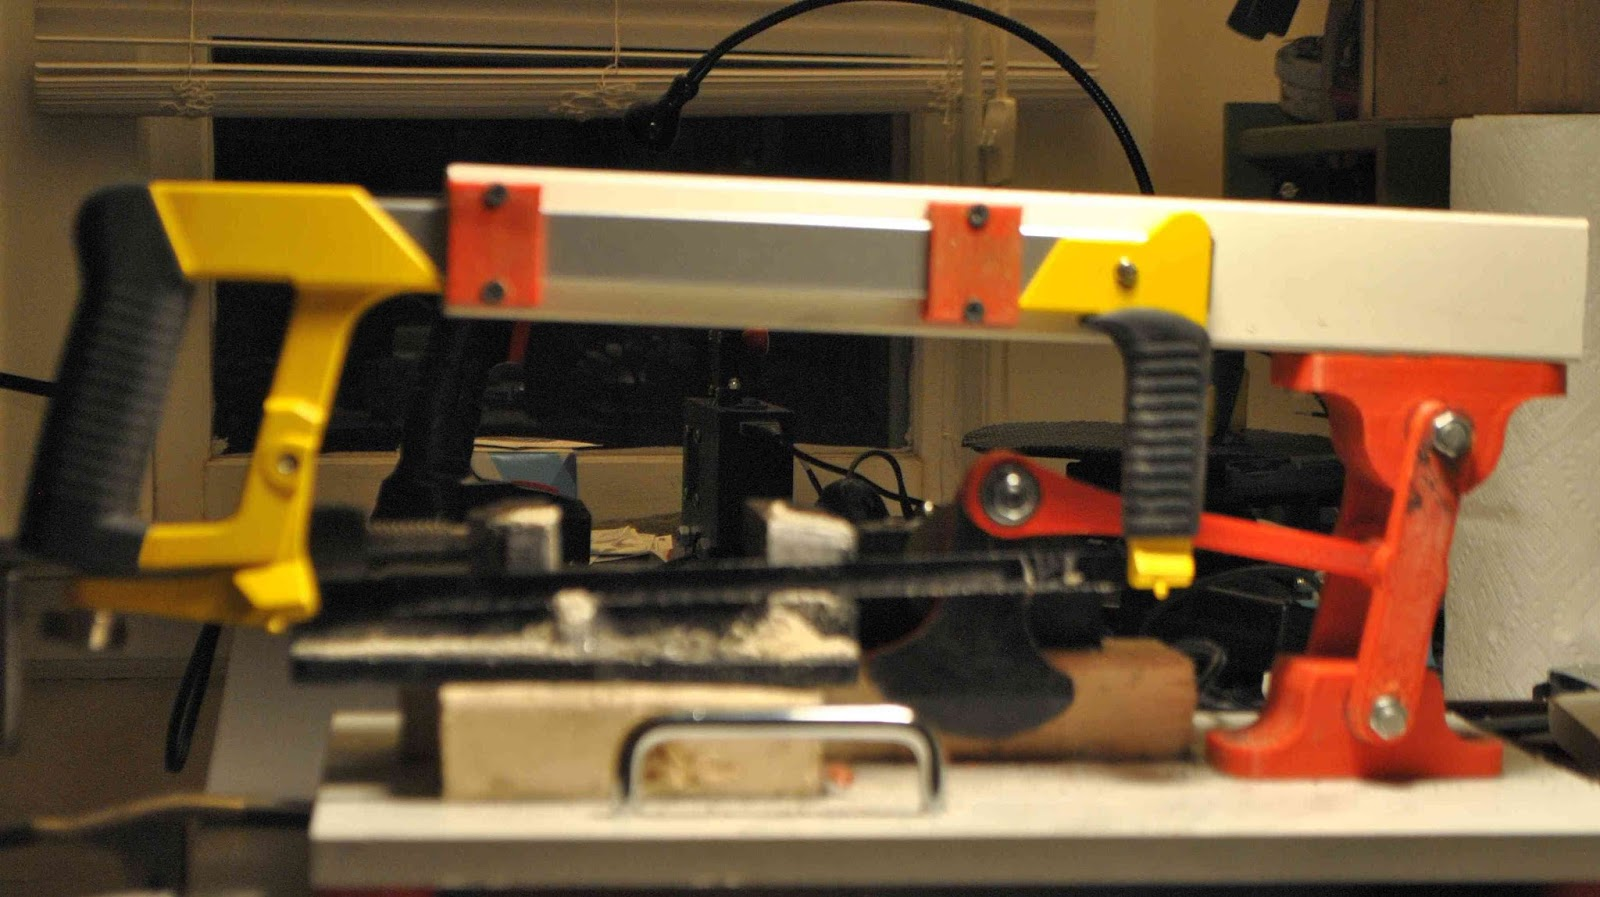 DIY 3D Printing: DIY Power Hacksaw made with 3D Printed Parts